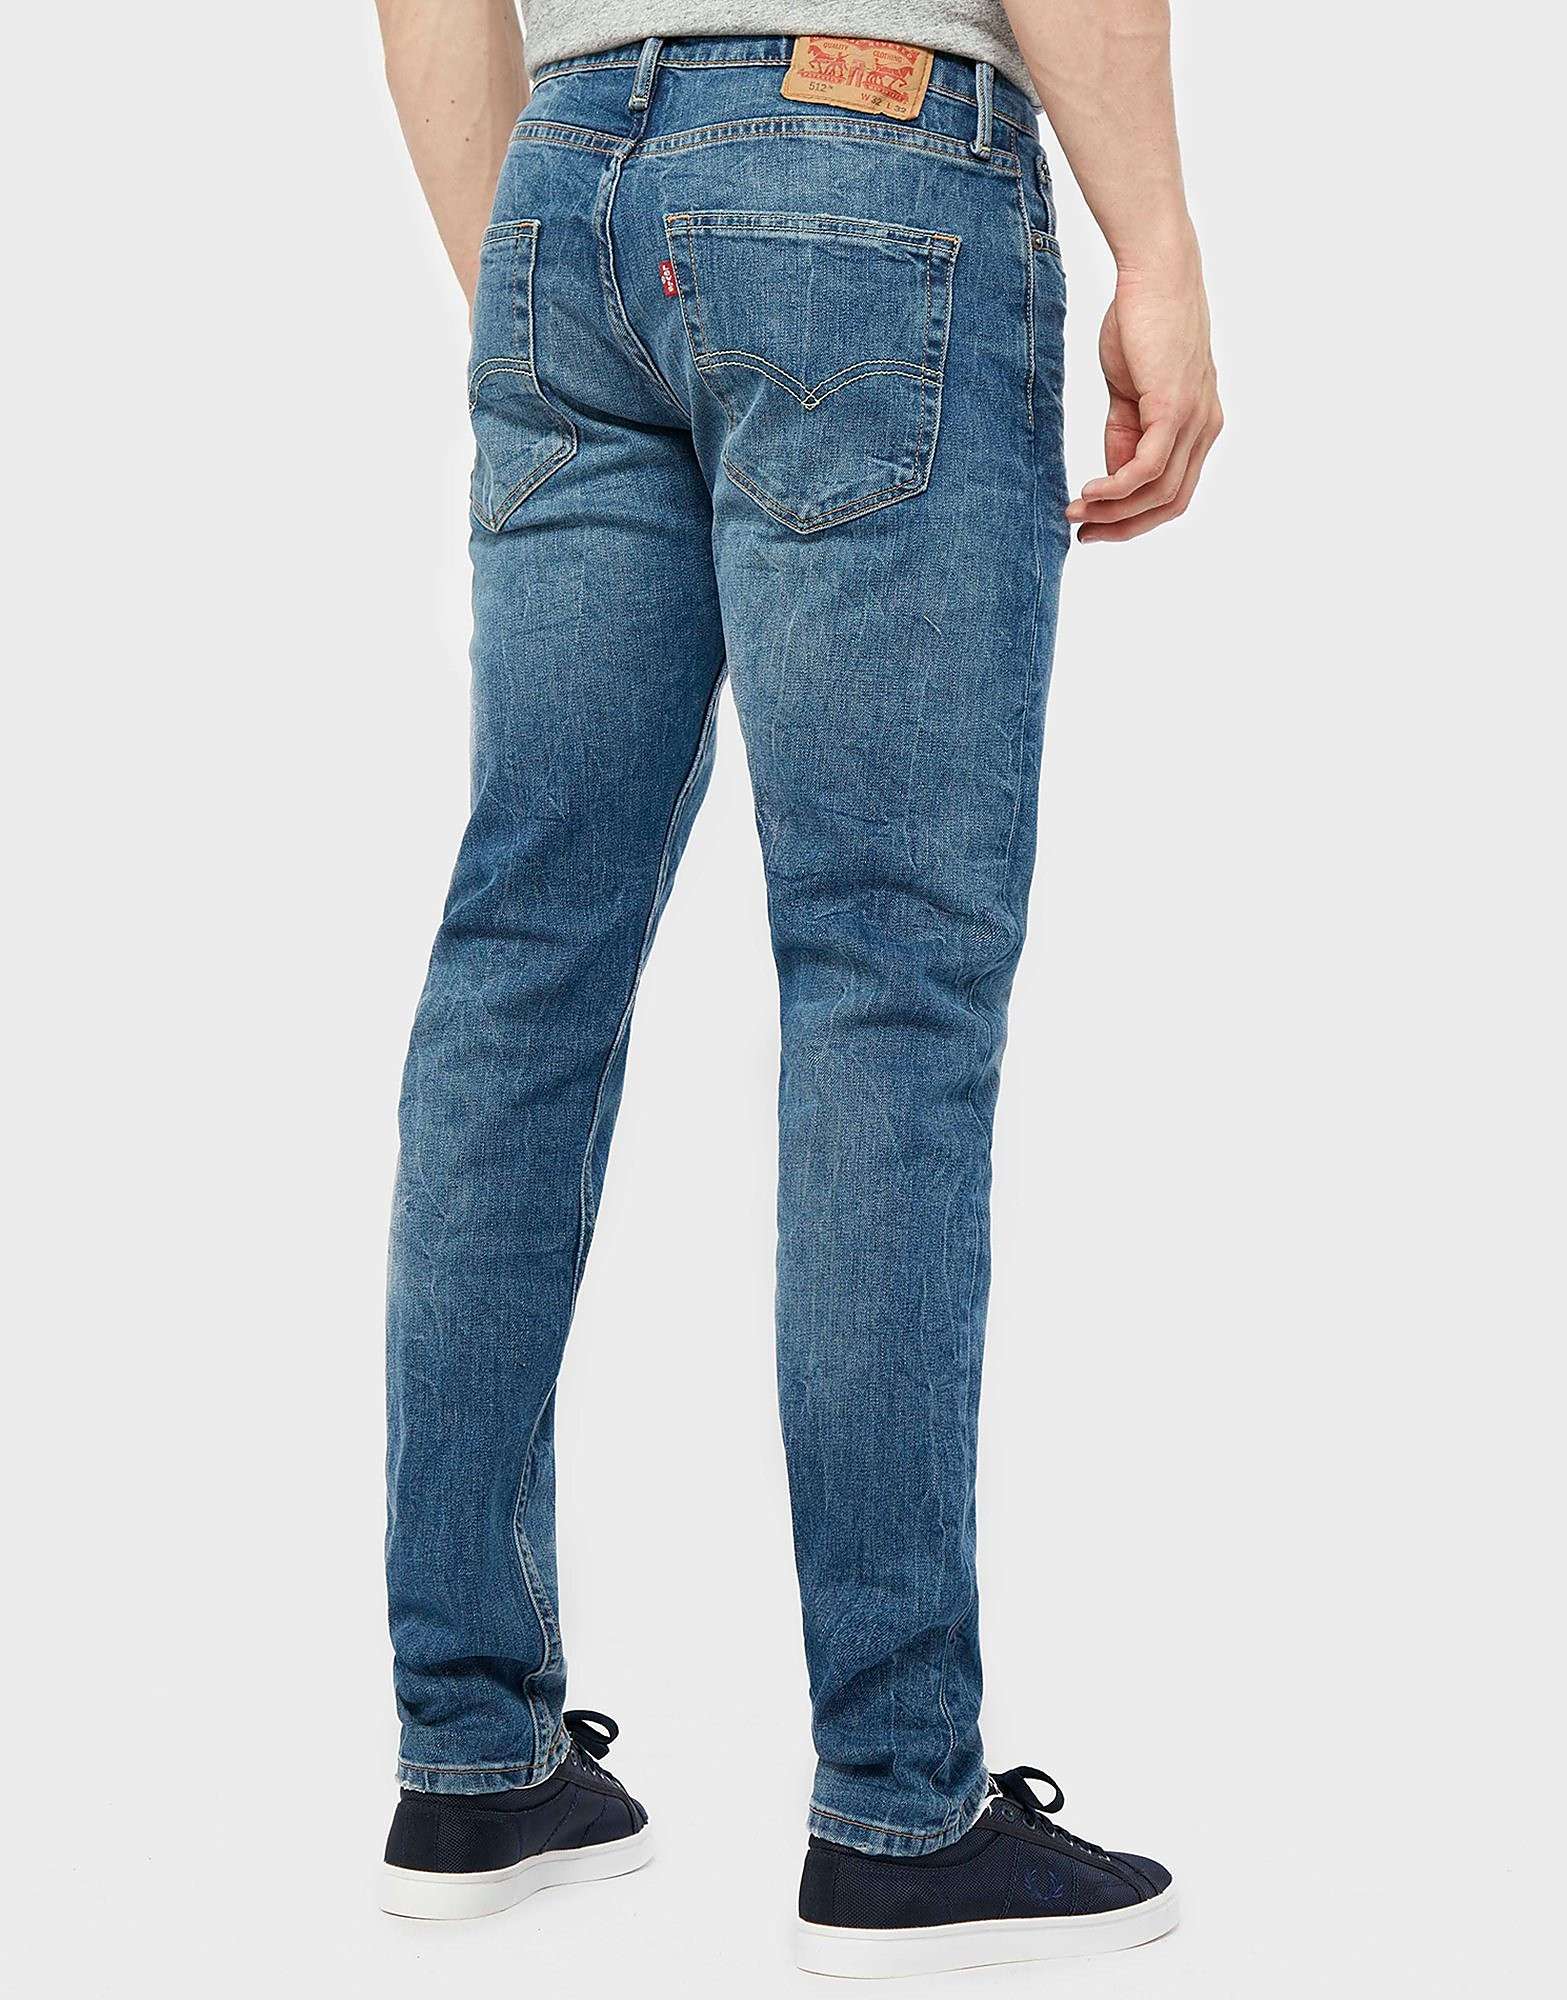 Levis 512 Taper Jeans